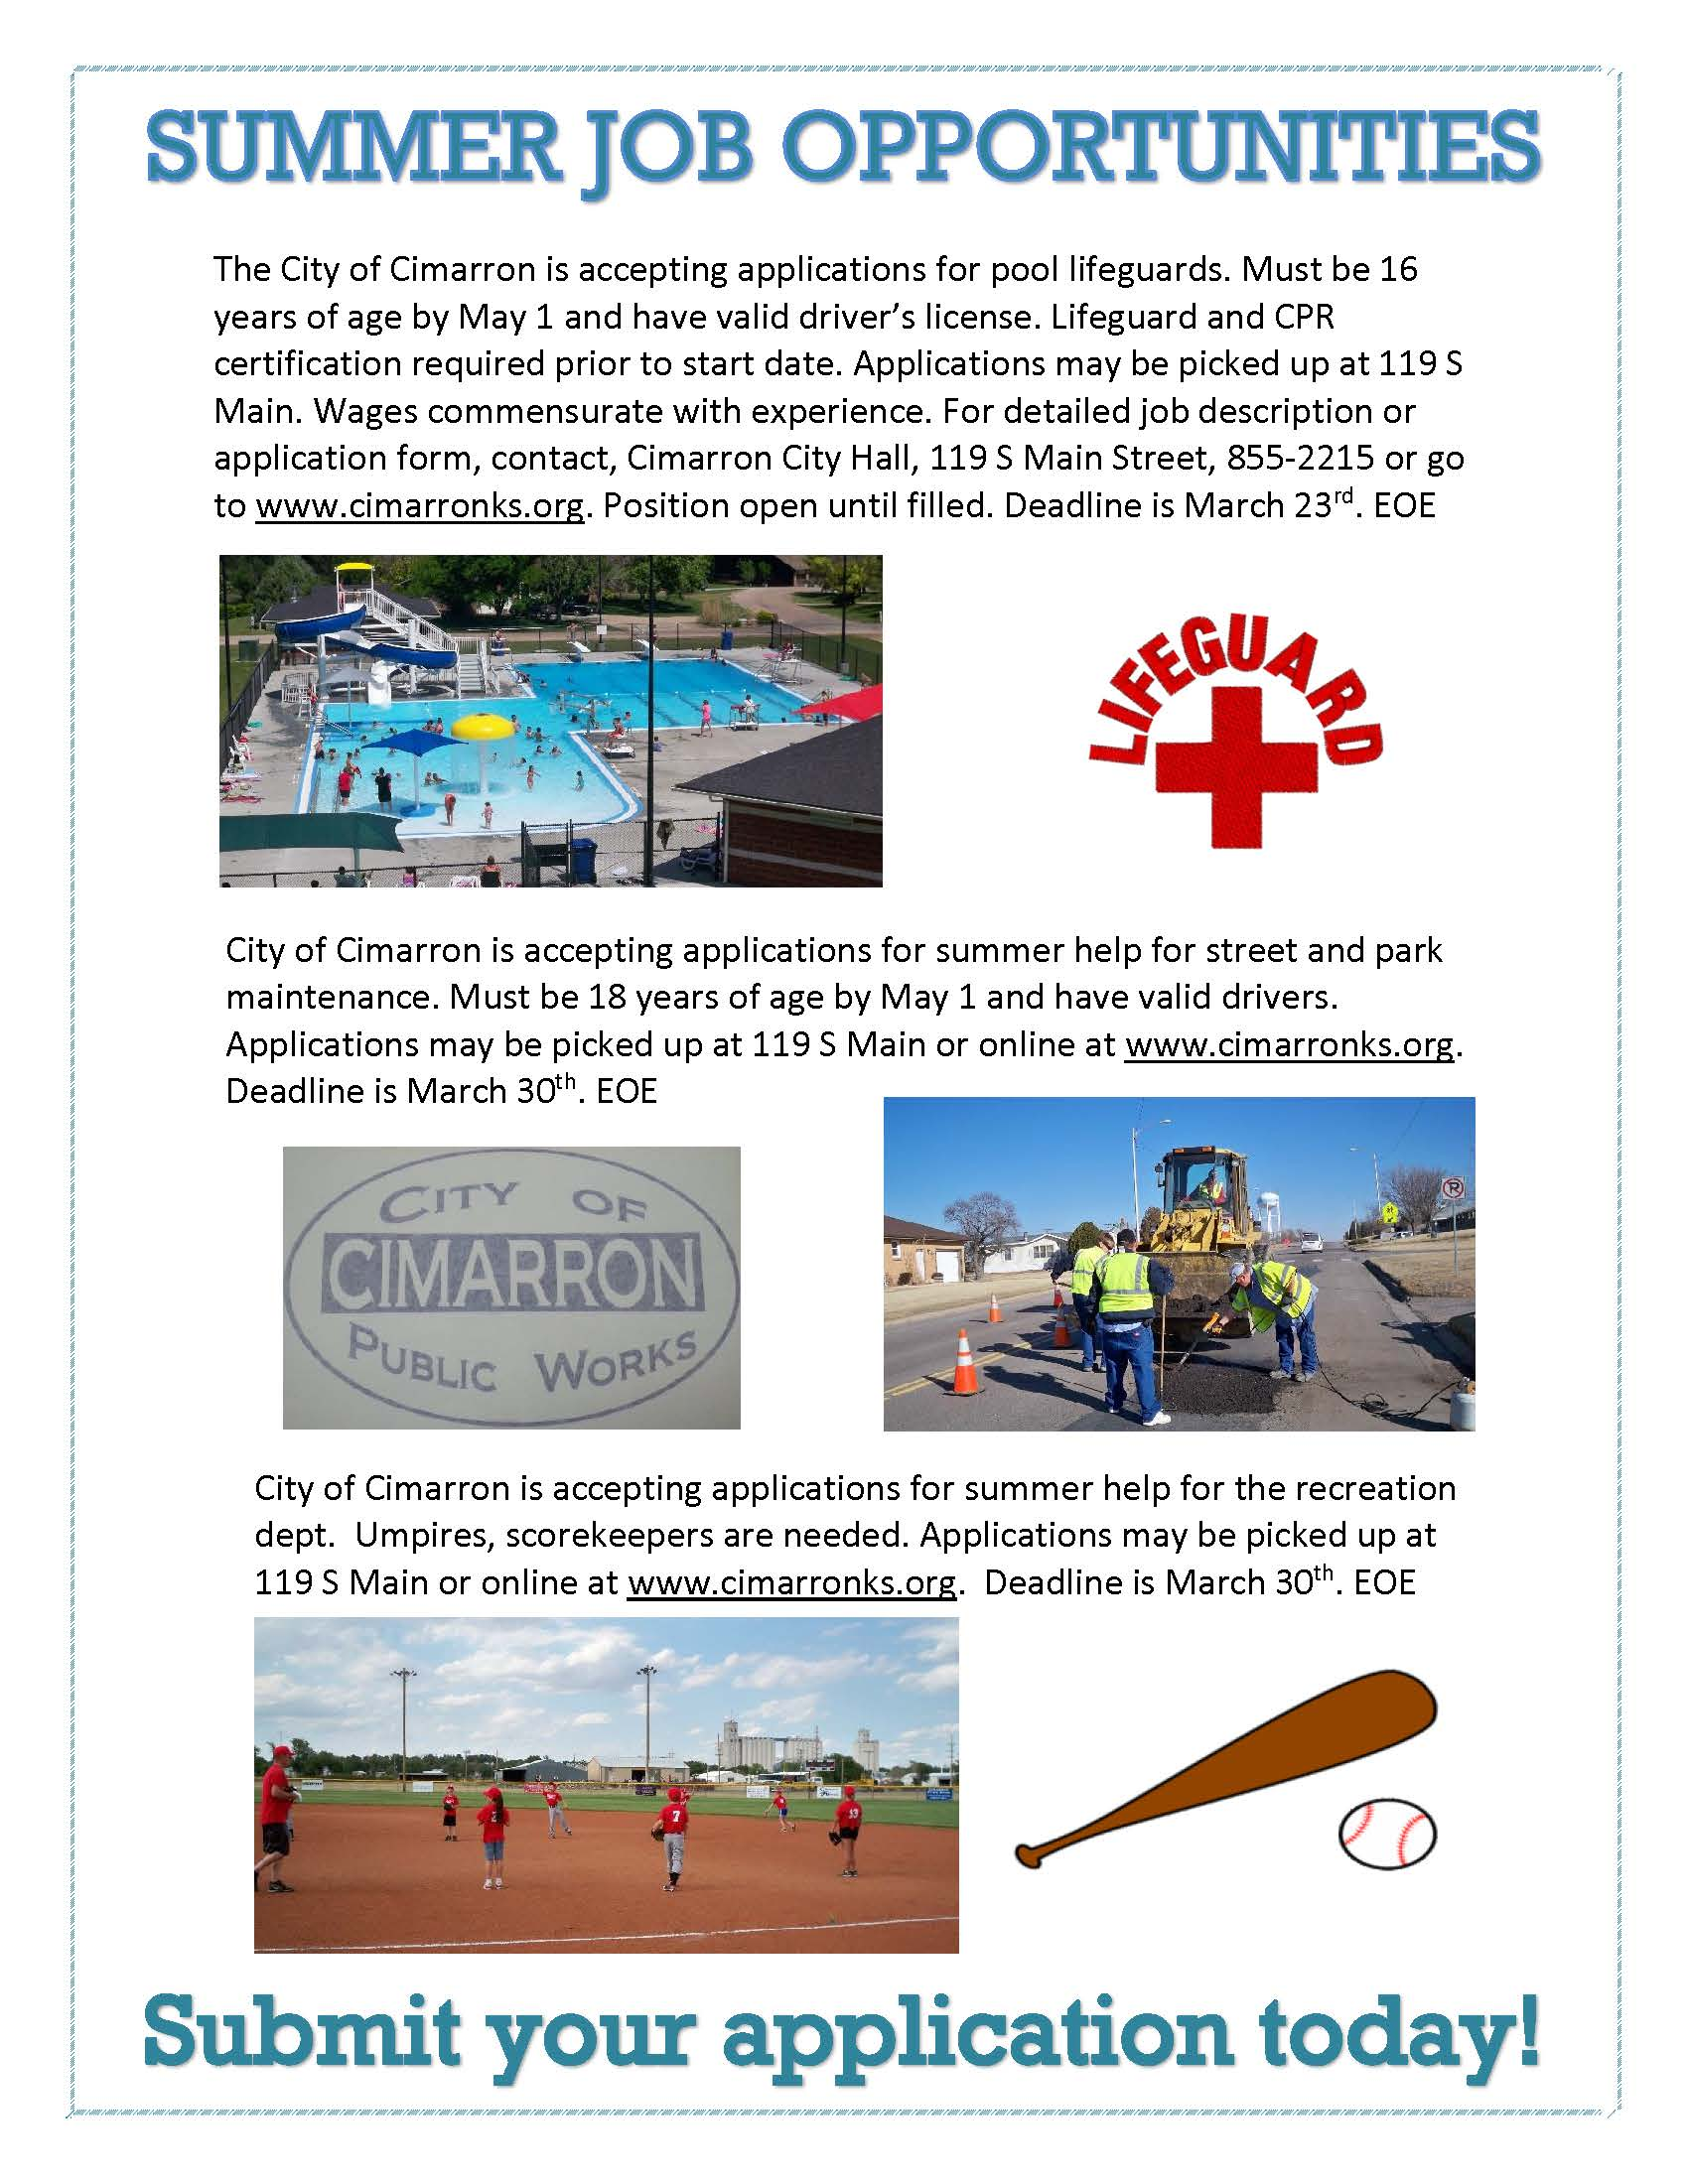 summer job opportunities city of cimarron job ads flyer